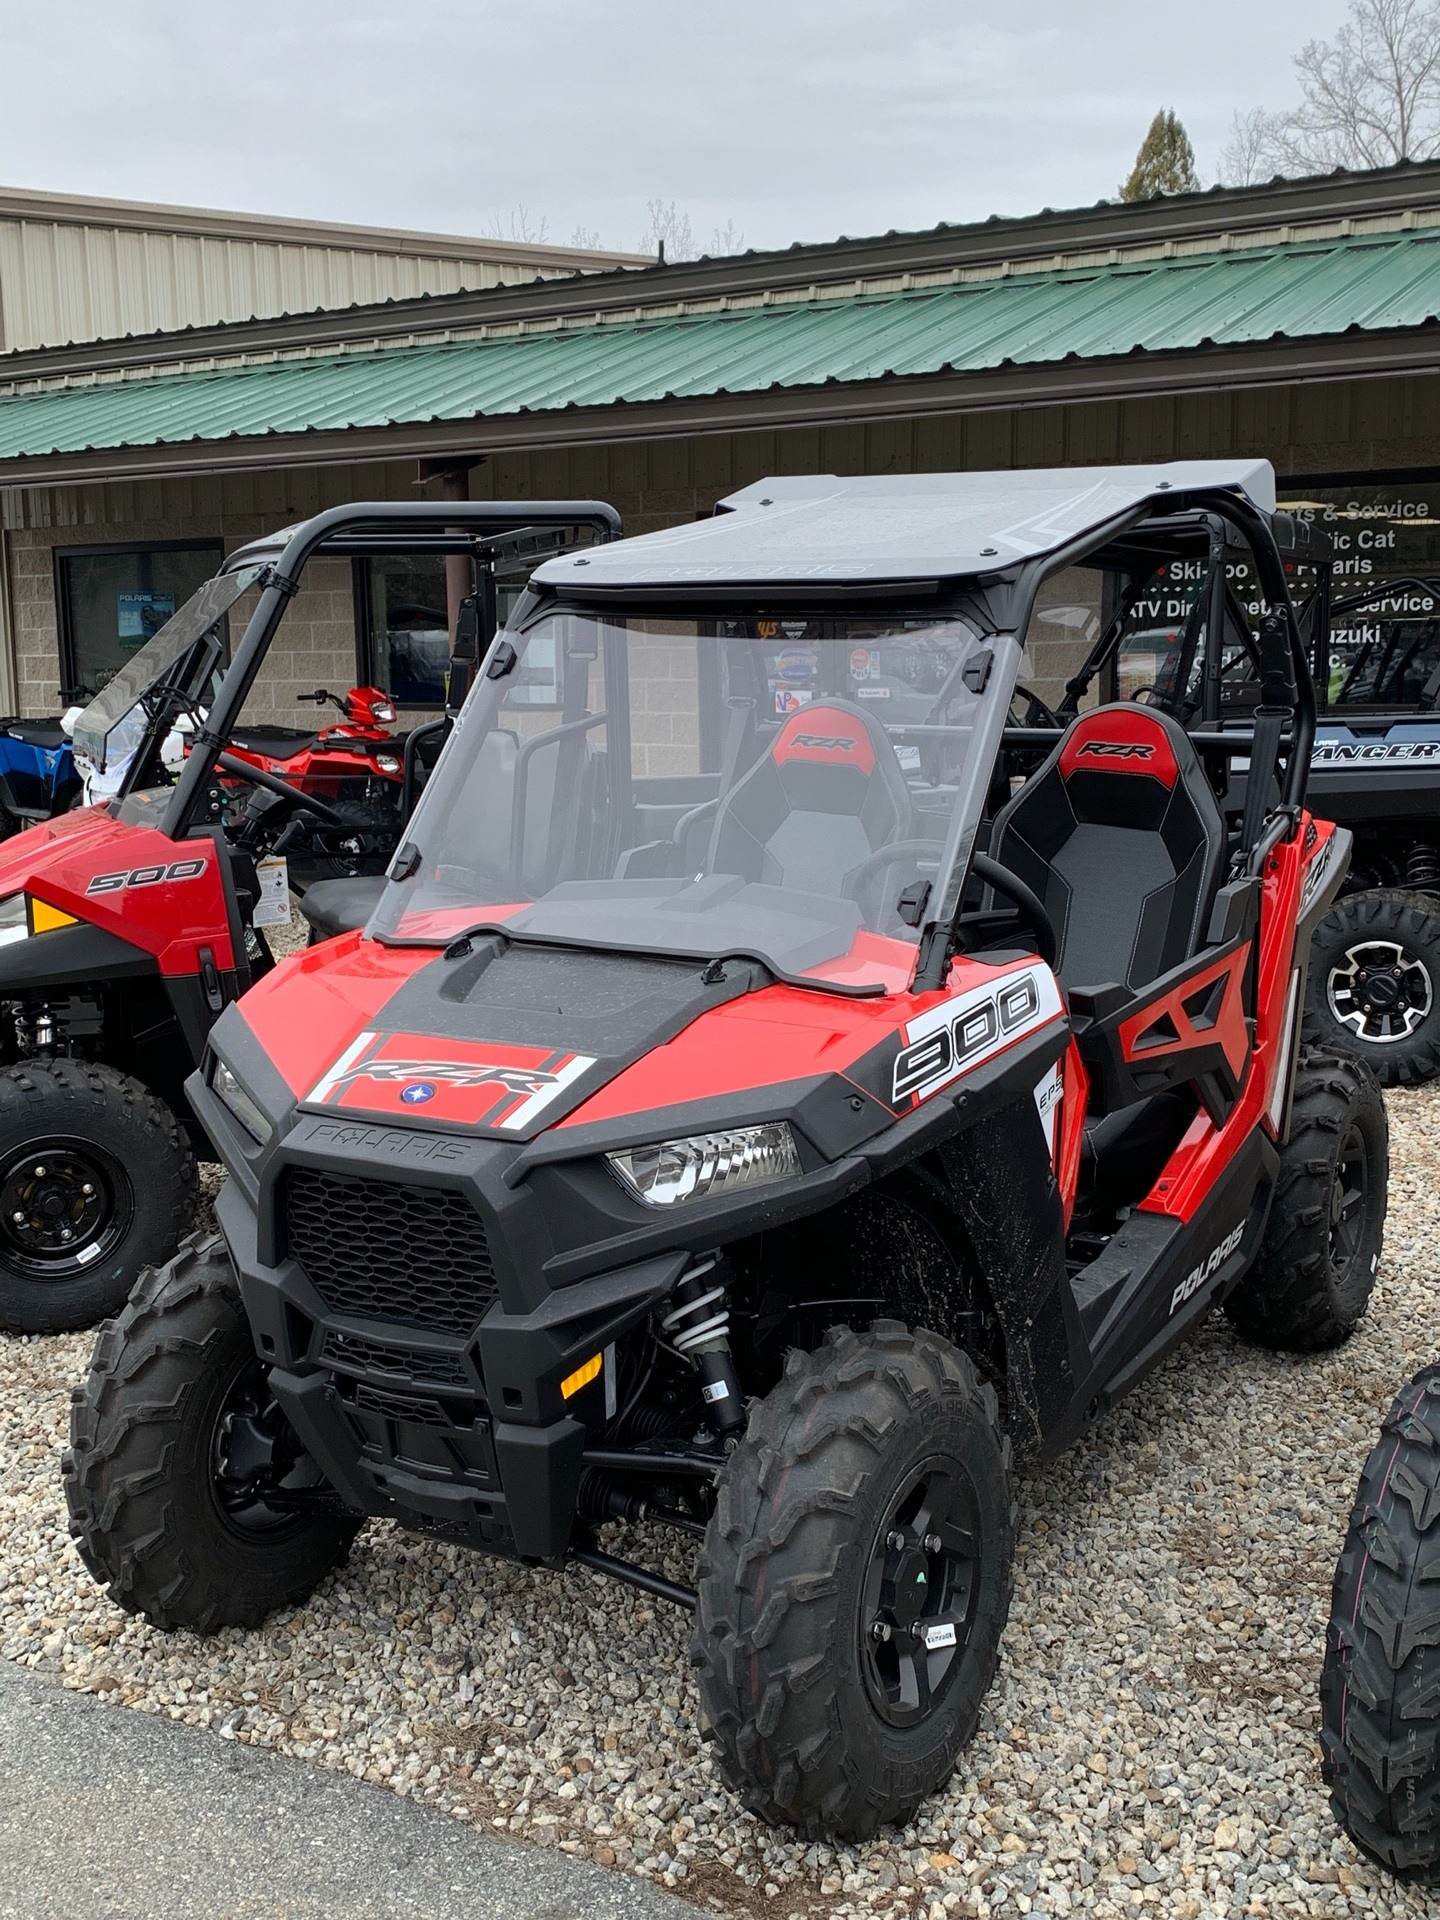 2019 Polaris RZR 900 EPS in Milford, New Hampshire